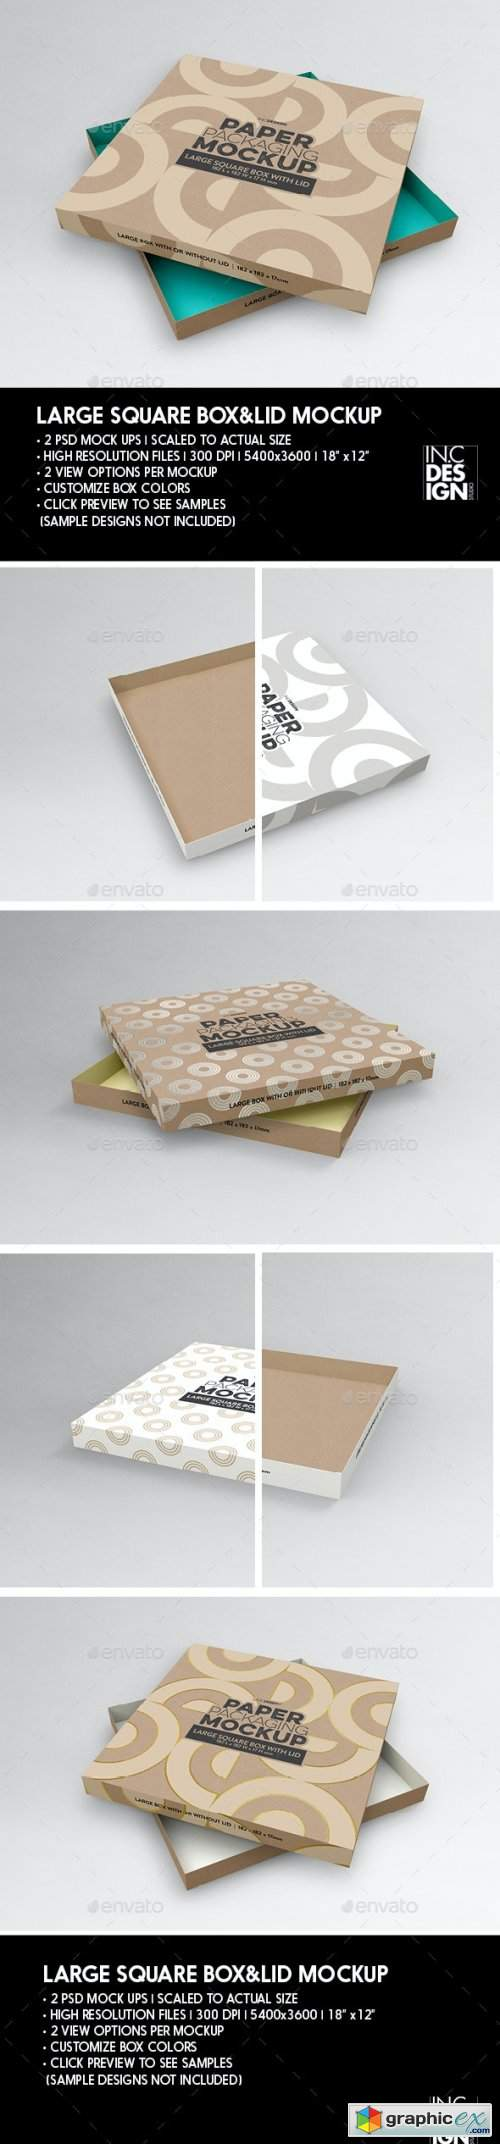 Large Square Paper Box and Lid Packaging Mockup